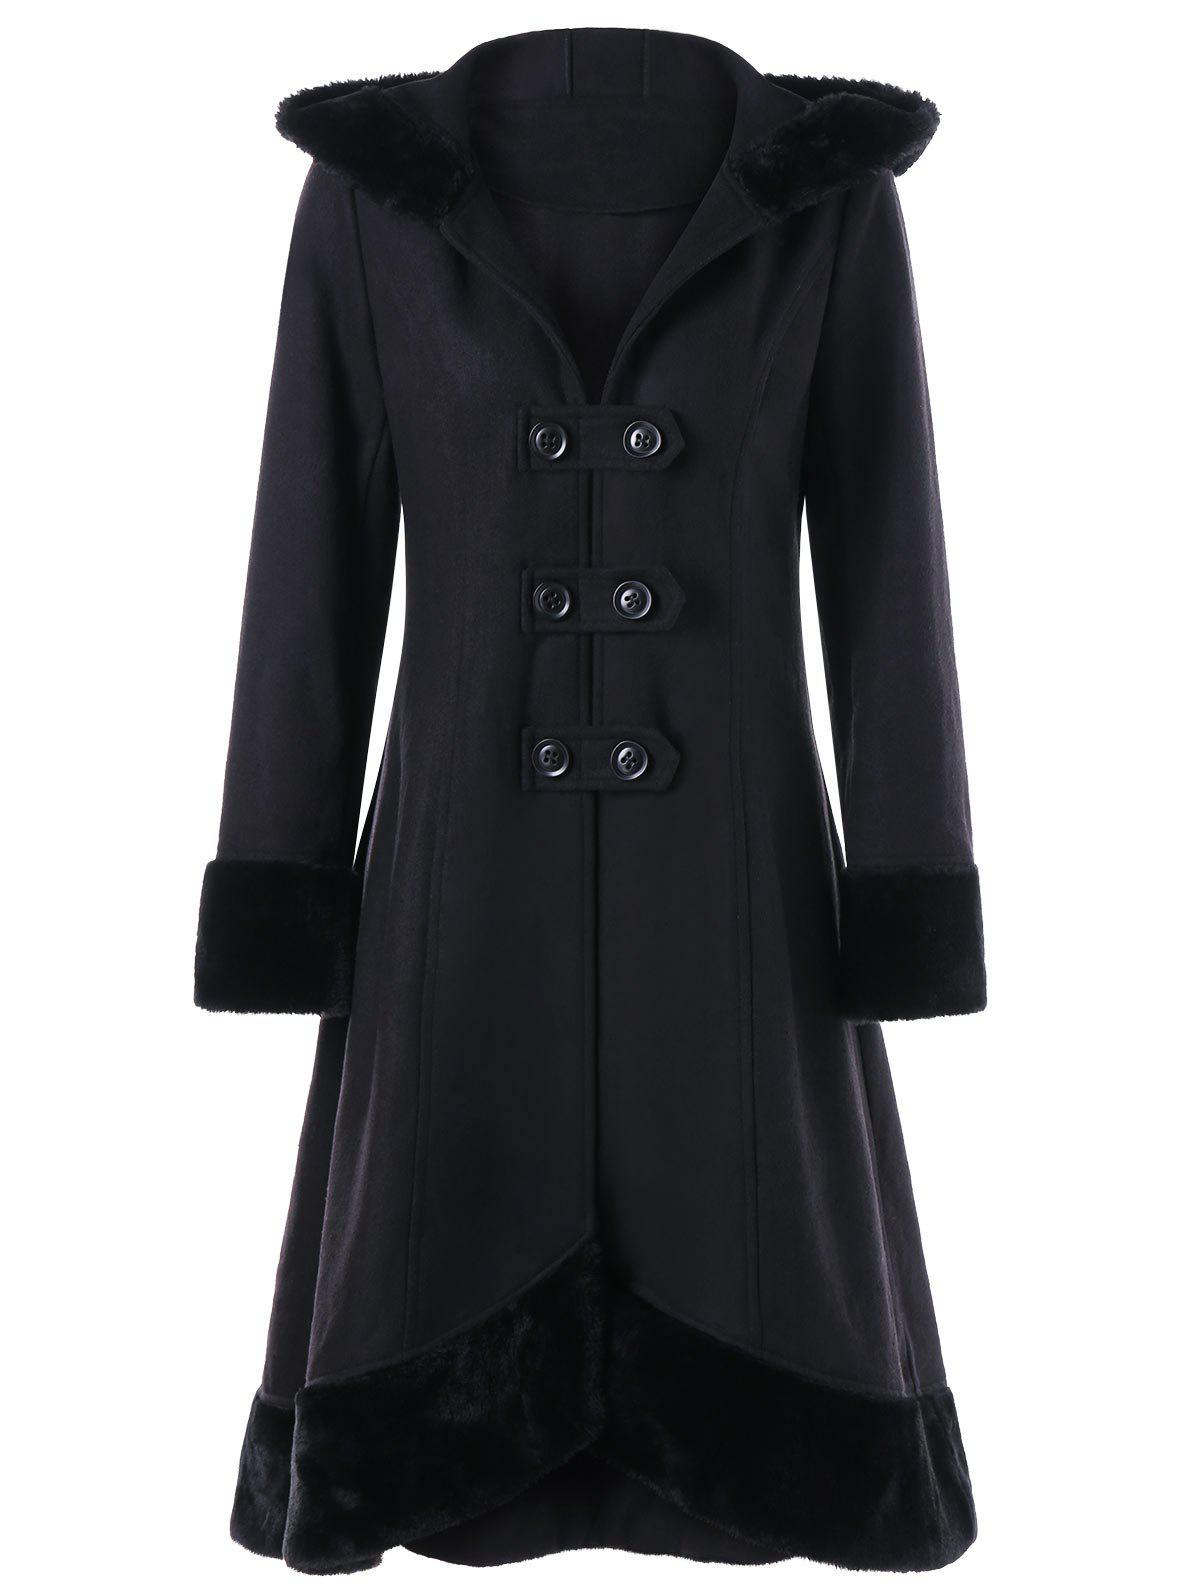 Lace Up Faux Fur Hem Hooded Dress CoatWOMEN<br><br>Size: XL; Color: BLACK; Clothes Type: Wool &amp; Blends; Material: Polyester; Type: Slim; Shirt Length: Long; Sleeve Length: Full; Collar: Hooded; Pattern Type: Solid; Style: Vintage; Season: Fall,Spring; Weight: 1.1700kg; Package Contents: 1 x Coat;